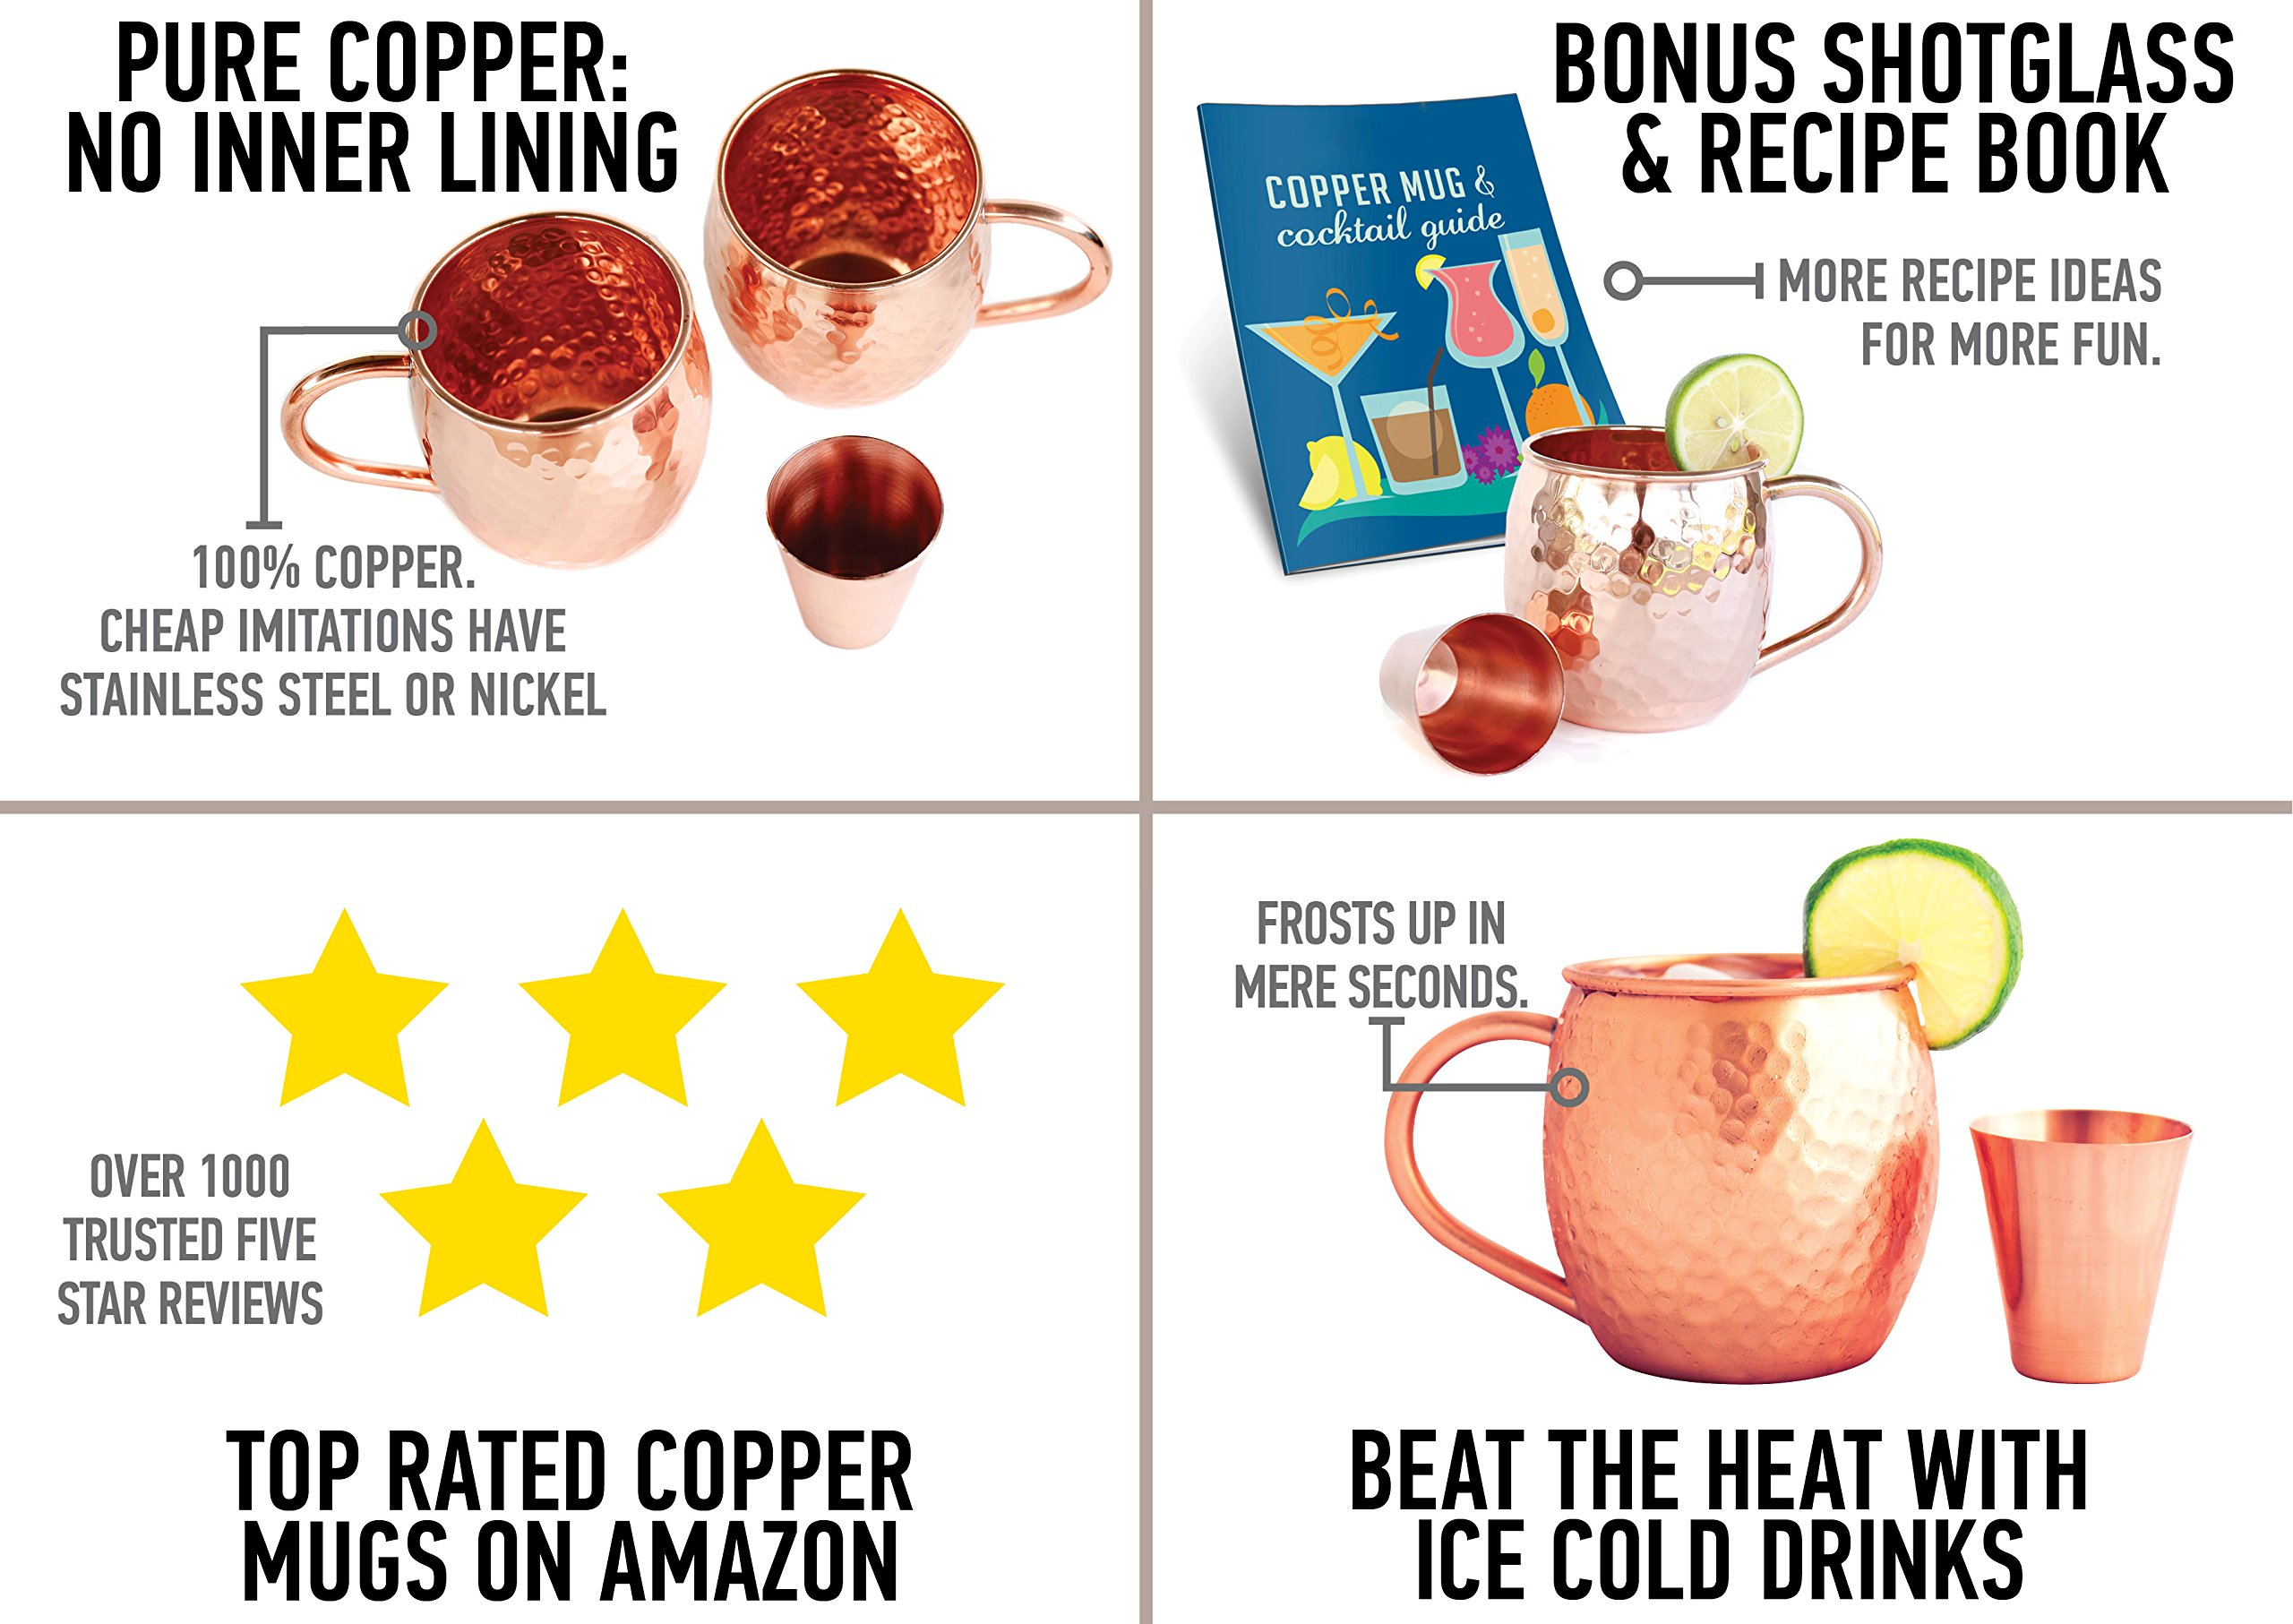 Set of 2 Moscow Mule Copper Mugs with Shot Glass - Two 16 Oz Copper Moscow Mule Mugs - Solid Copper Hammered Mug - Copper Cups for Moscow Mules by Willow & Everett (Image #3)